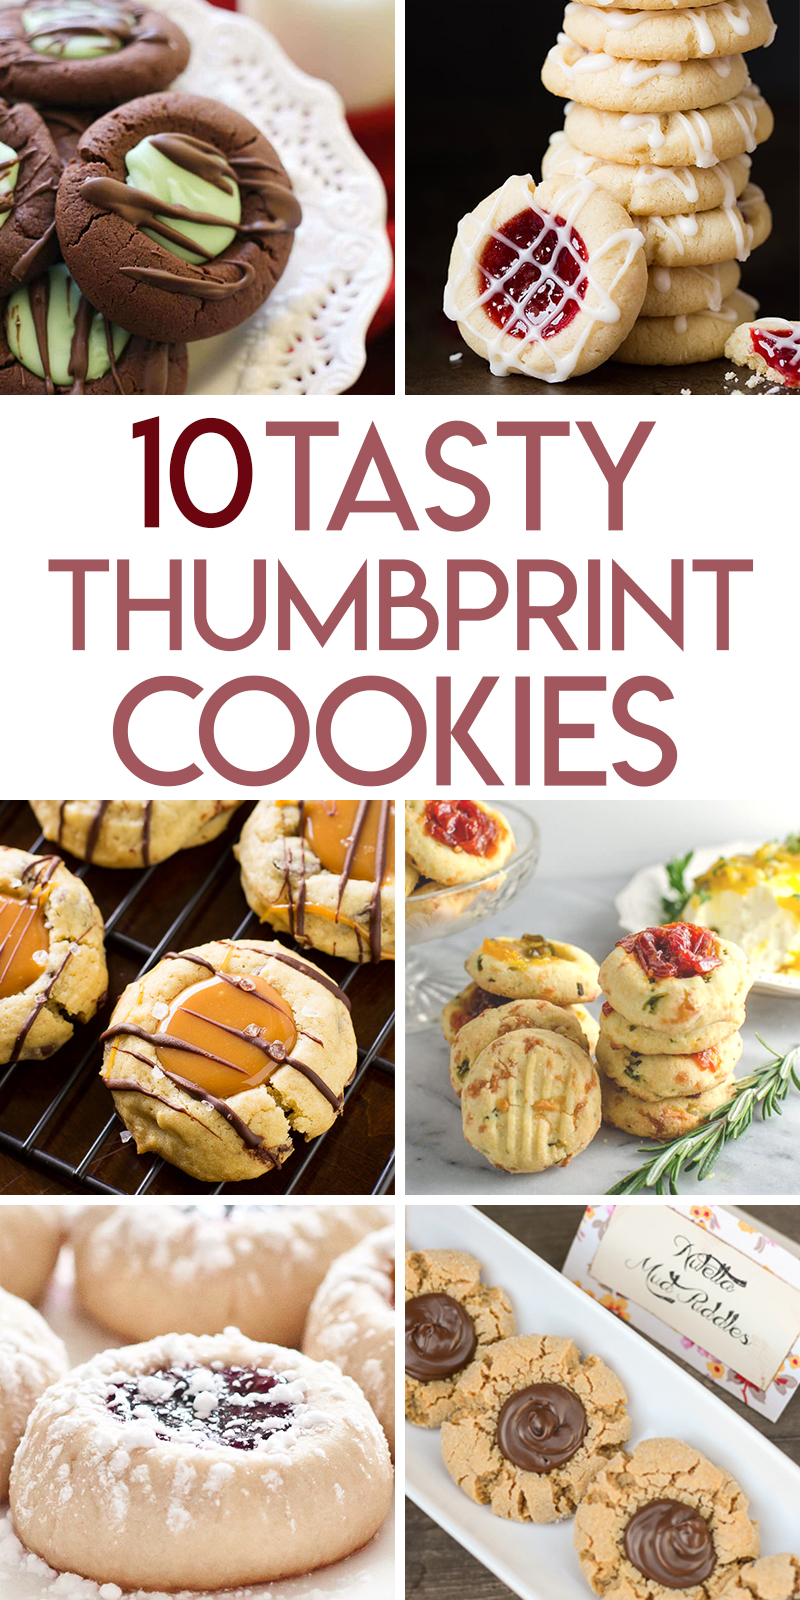 10 Tasty thumbprint cookie recipes